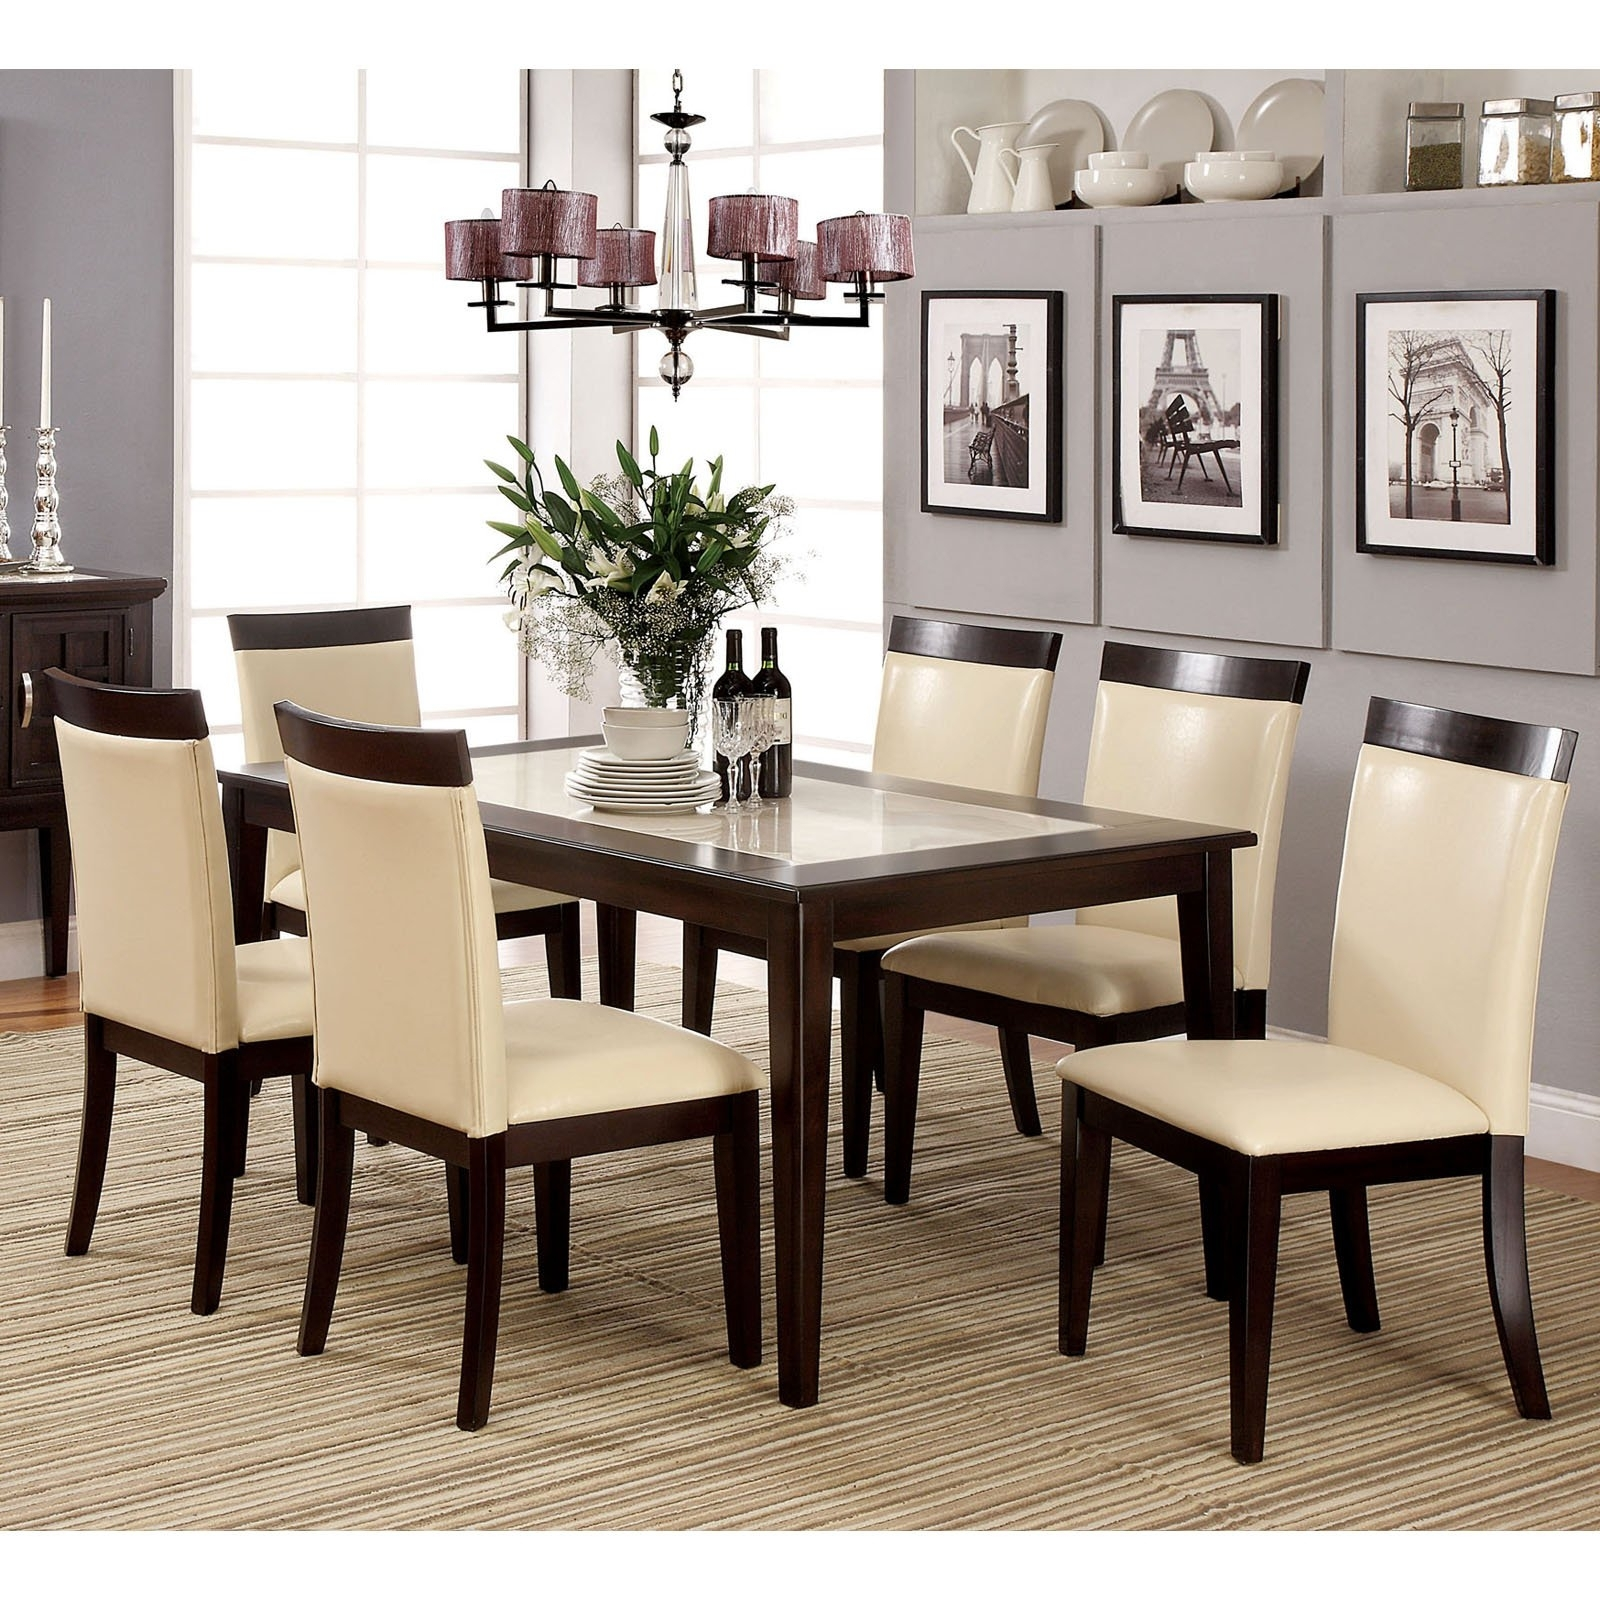 Small Marble Effect Dining Table With 6 Chairs Plus Top Together For With Popular Marble Effect Dining Tables And Chairs (View 25 of 25)